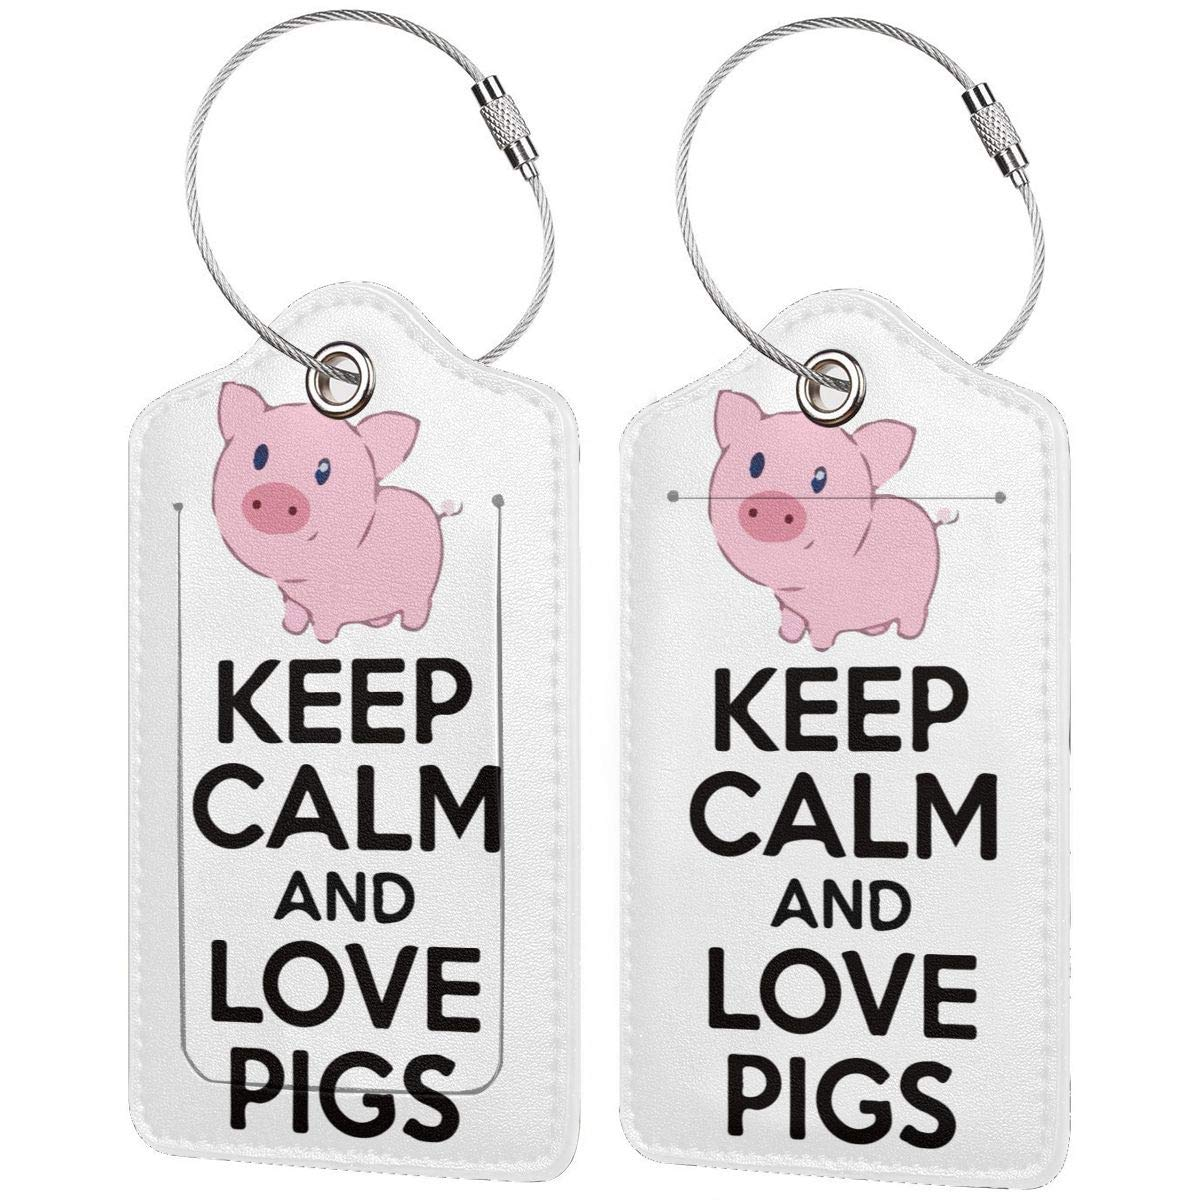 Keep Calm And Love Pigs Travel Luggage Tags With Full Privacy Cover Leather Case And Stainless Steel Loop